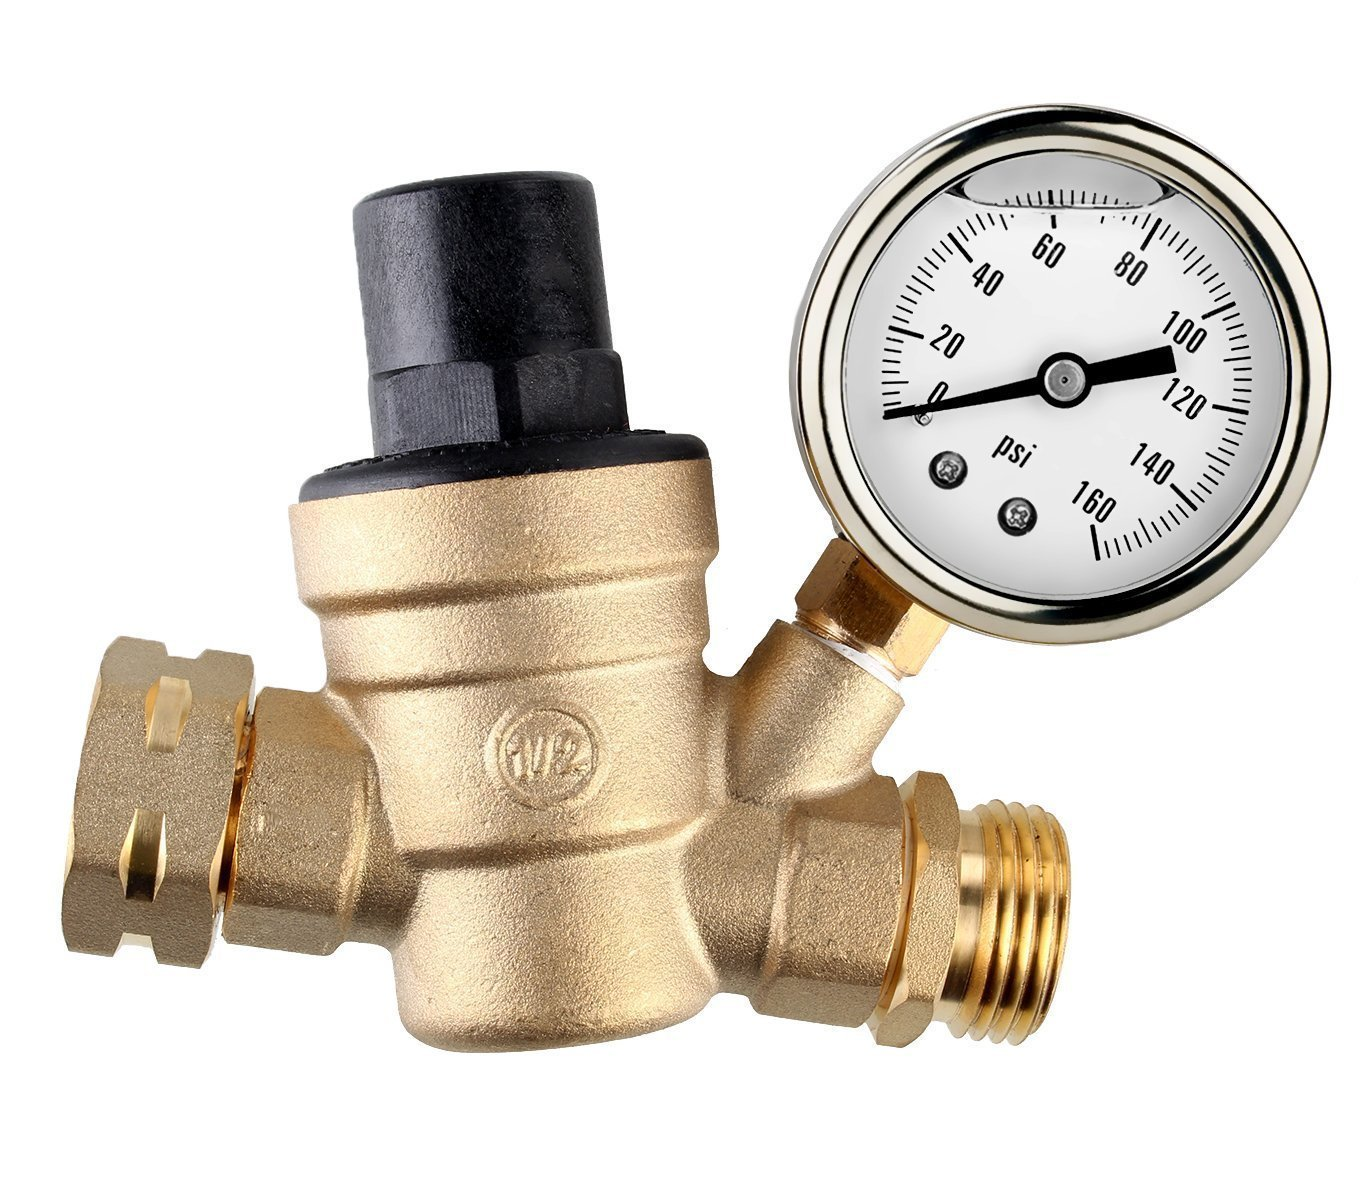 Water Pressure Regulator, Brass Lead-free Adjustable RV Water Pressure  Reducer with Guage and Inlet Screened Filter, 160 PSI Gauge with oil, By